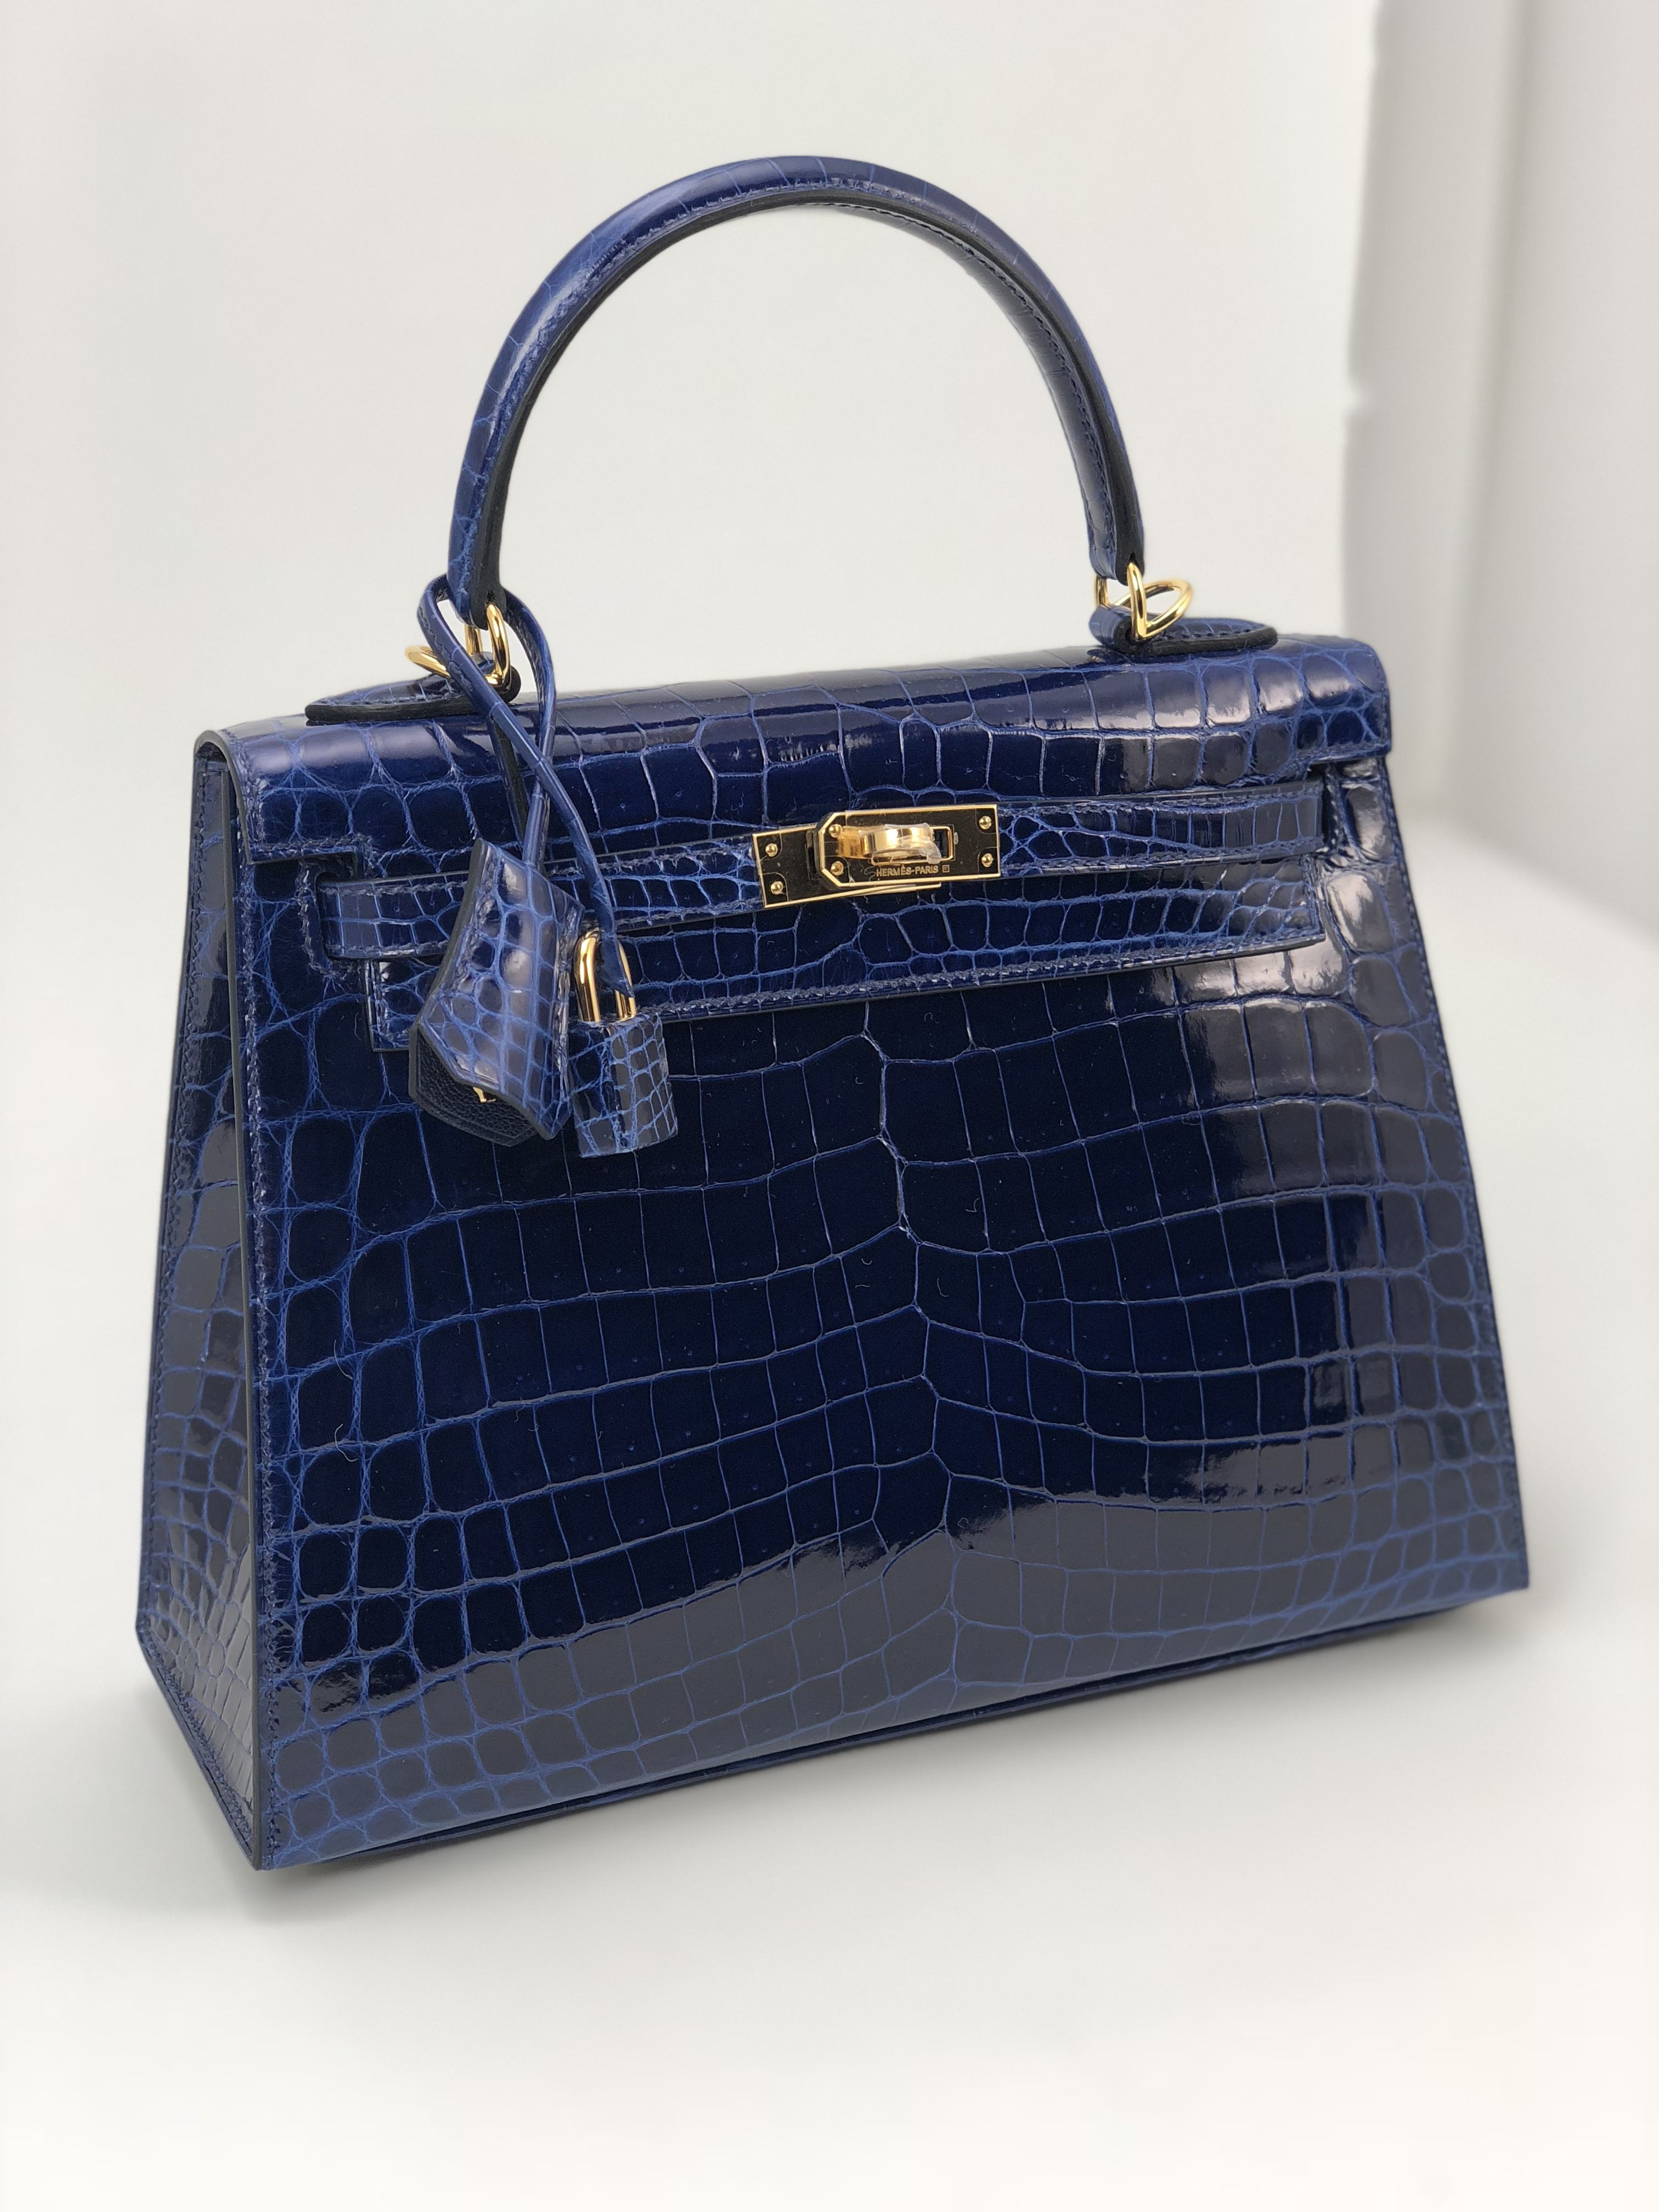 6a2be27823be Hermes Kelly Sapphire in Crocodile